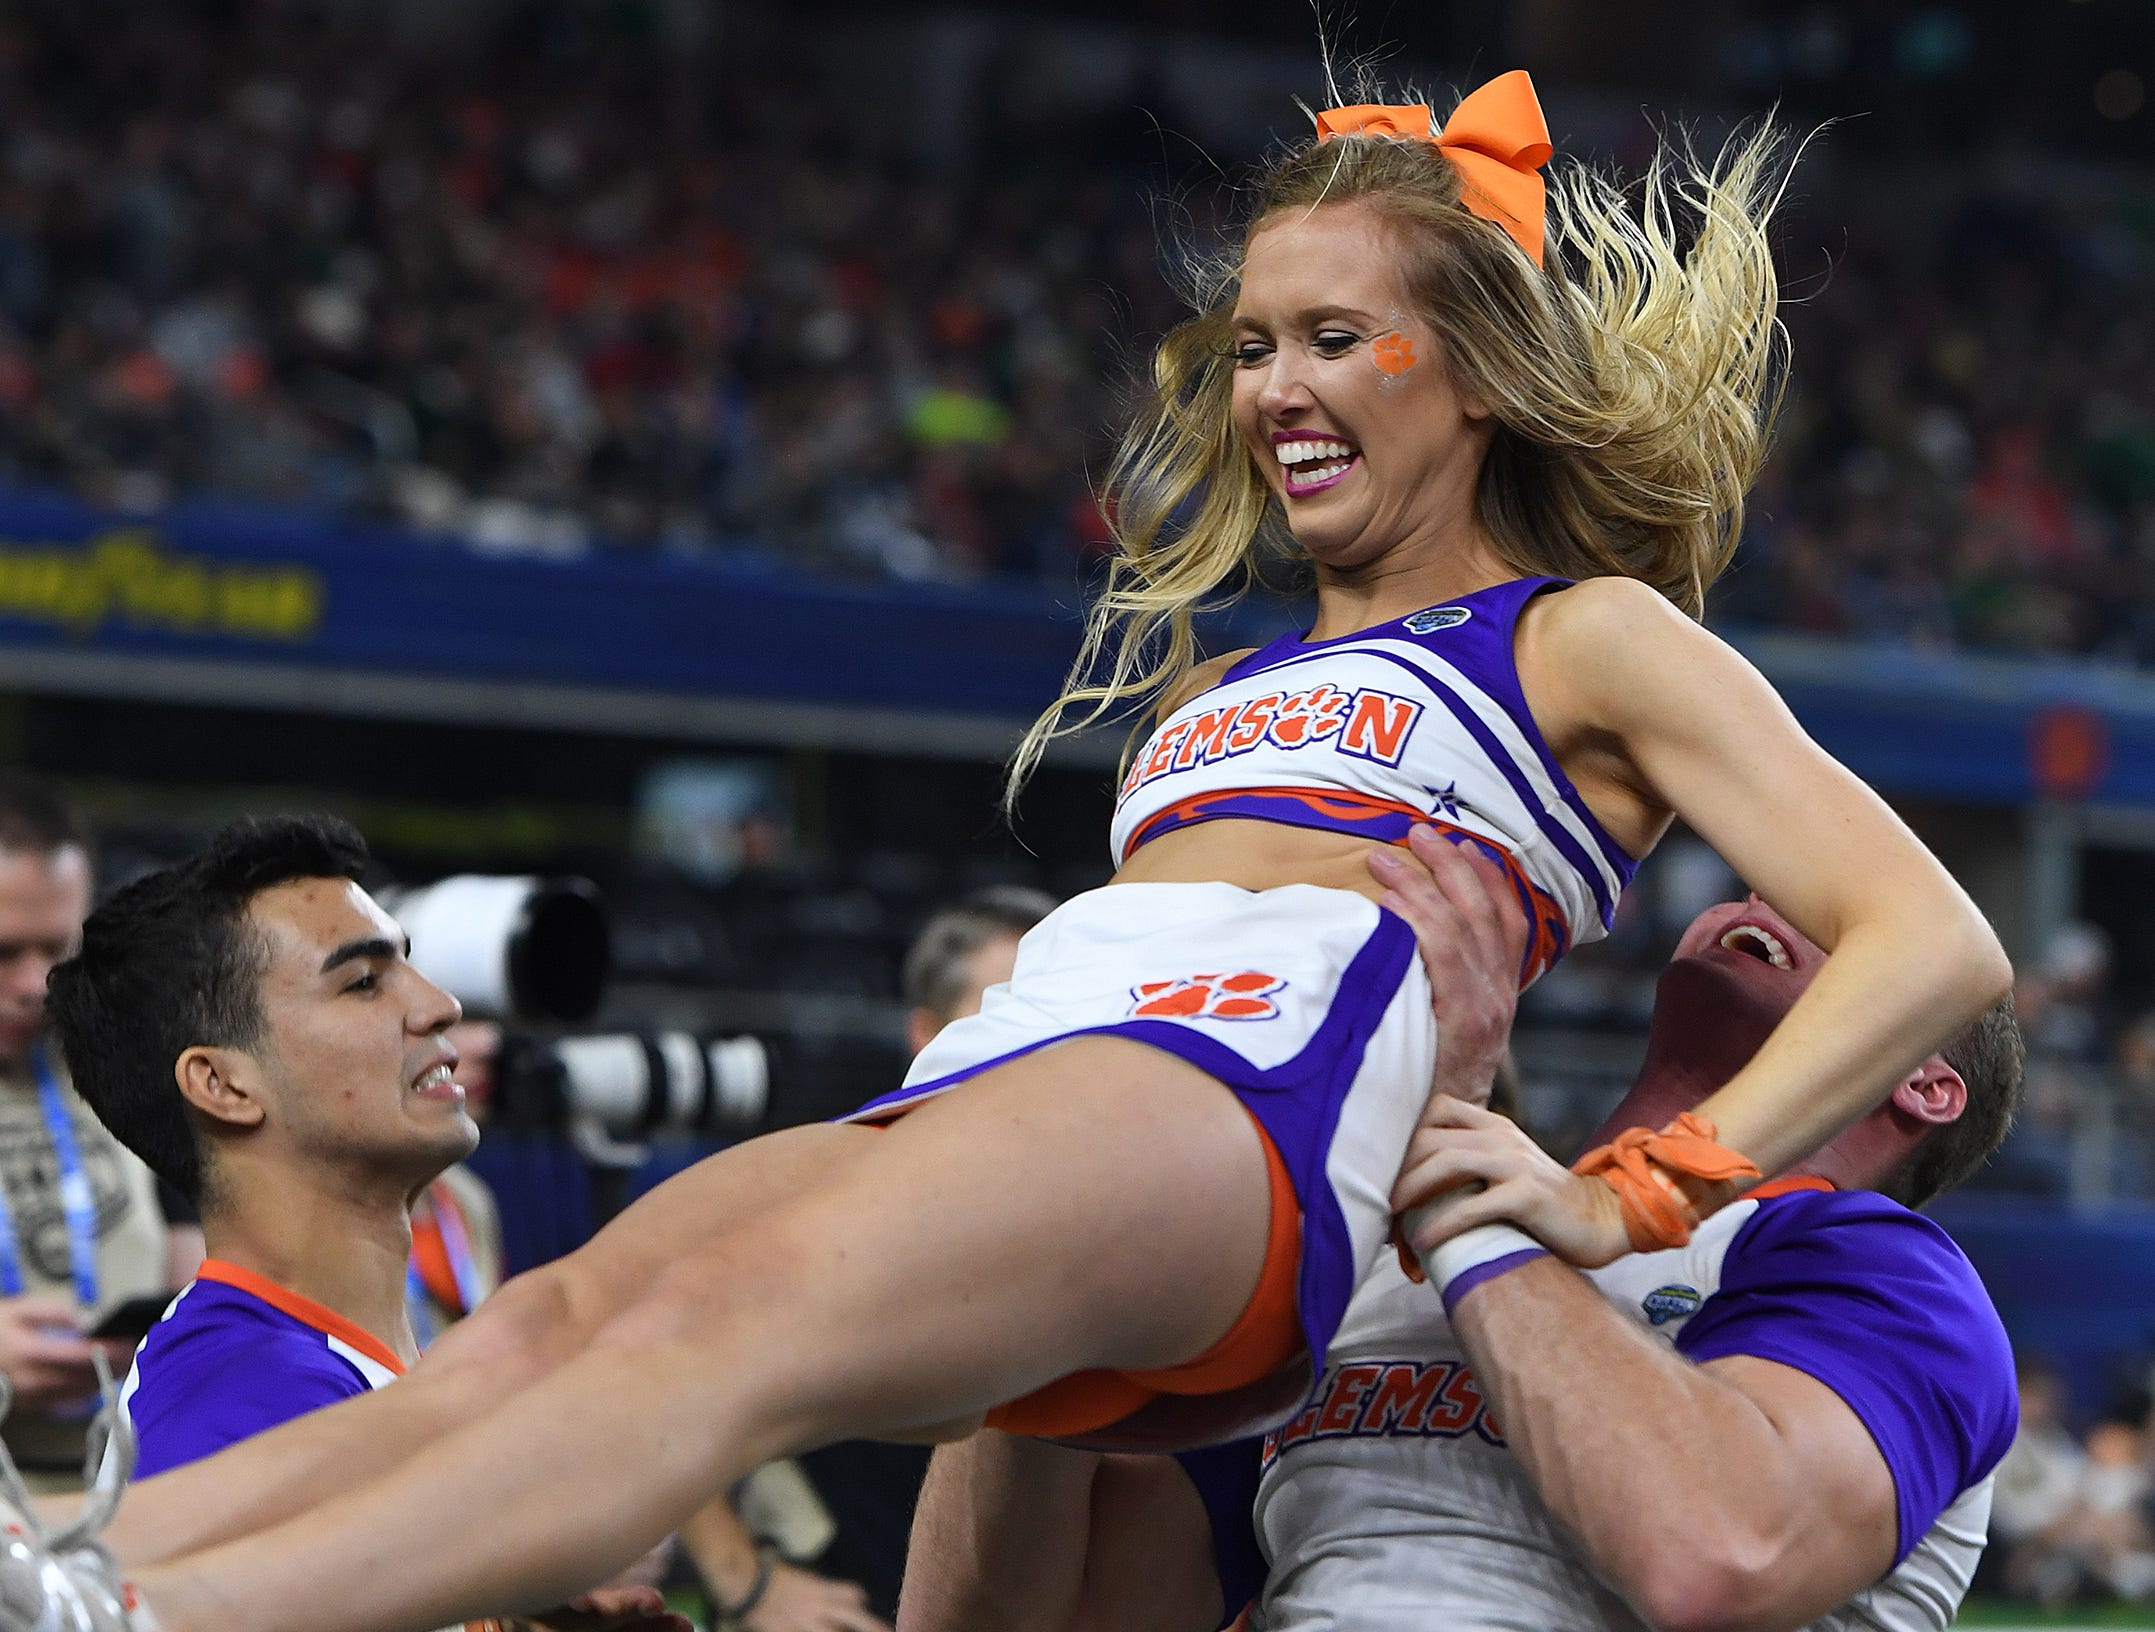 Clemson cheerleaders during the 3rd quarter of the Goodyear Cotton Bowl at AT&T stadium in Arlington, TX Saturday, December 29, 2018.